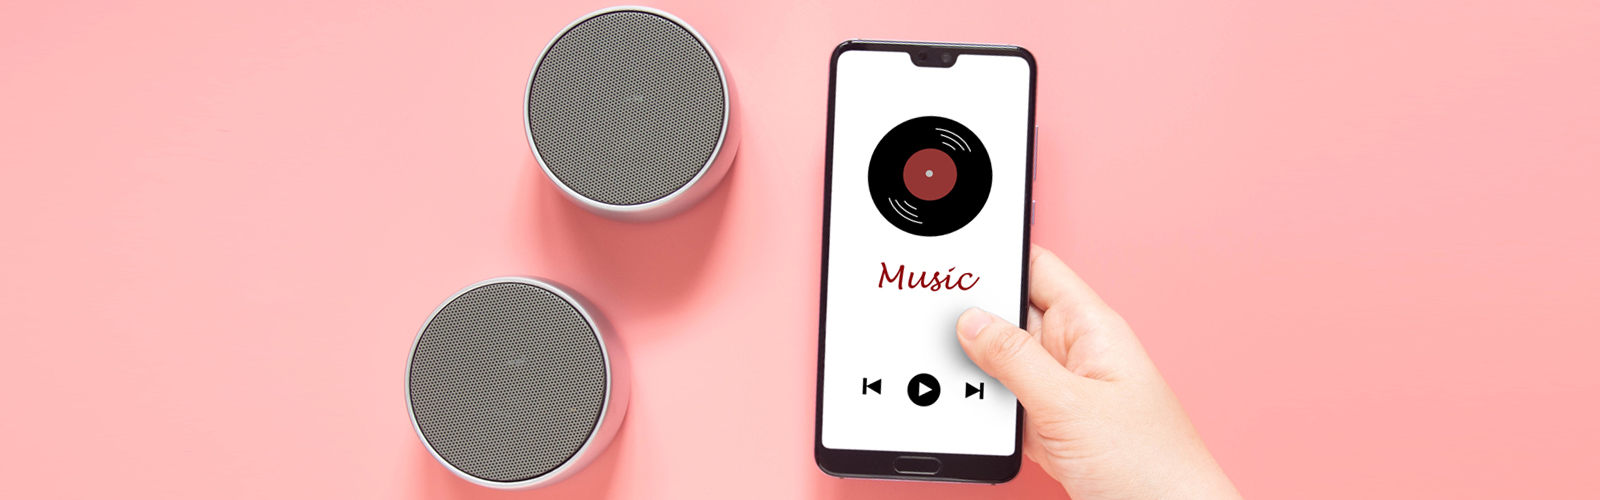 Phone and speakers playing music